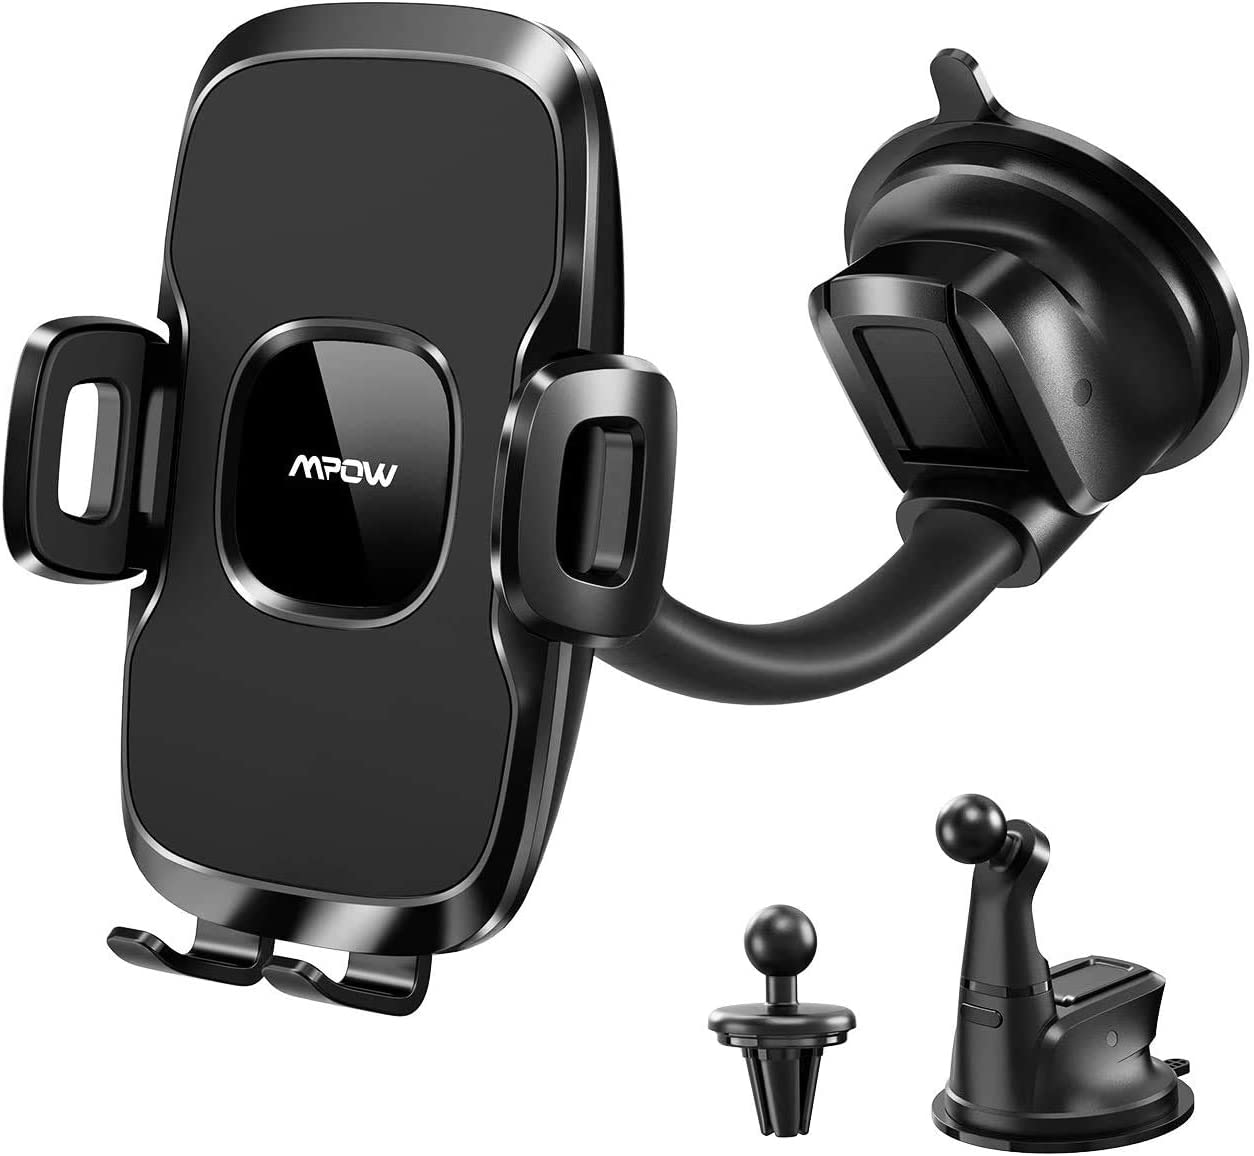 Mpow 3-in-1 Air Vent Dashboard Windshield Car Phone Mount, Cell Phone Holder Compatible with iPhone 12 11 Pro Max XS MAX/XS/XR/8/8 Plus/7/7 Plus, Samsung Galaxy S10/S9/S8 and More